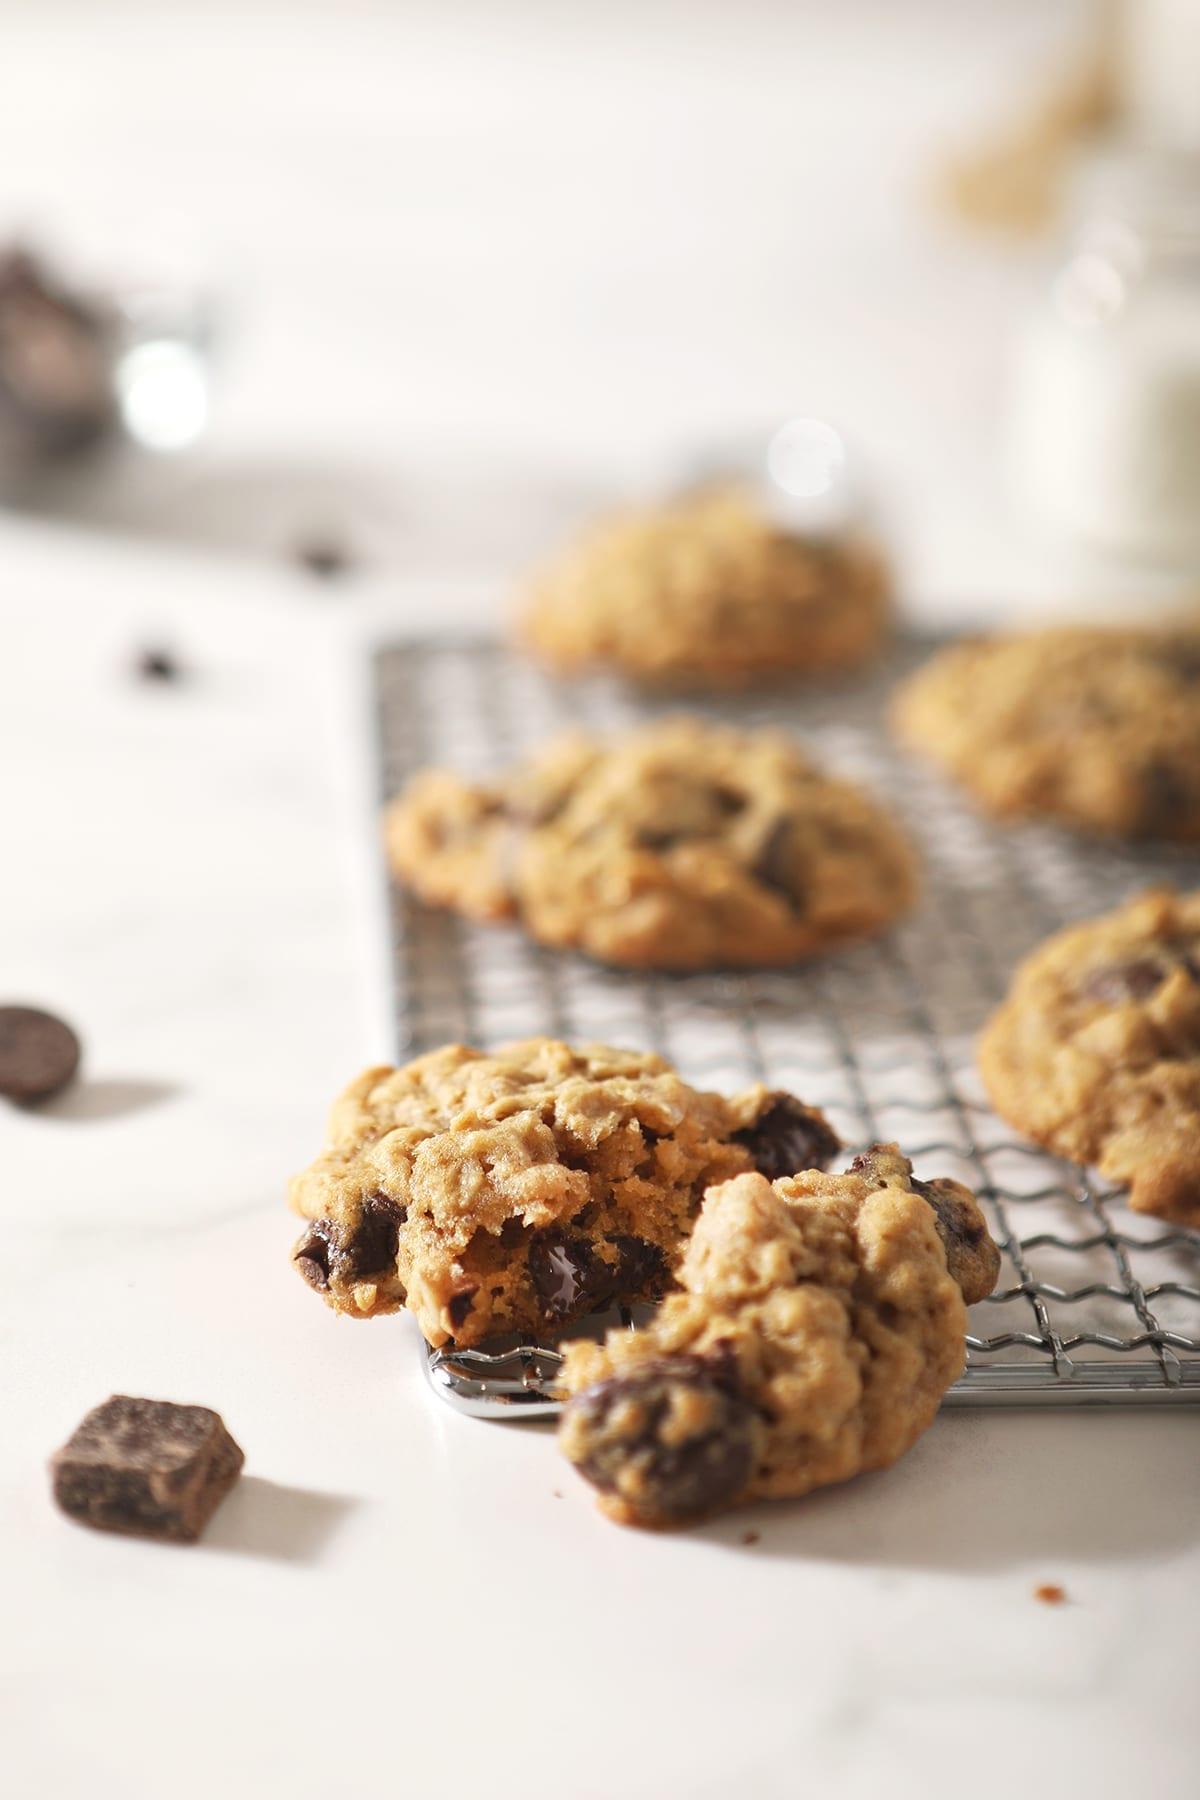 A halved oatmeal chocolate chip cookie on a wire cooling rack with other cookies behind it